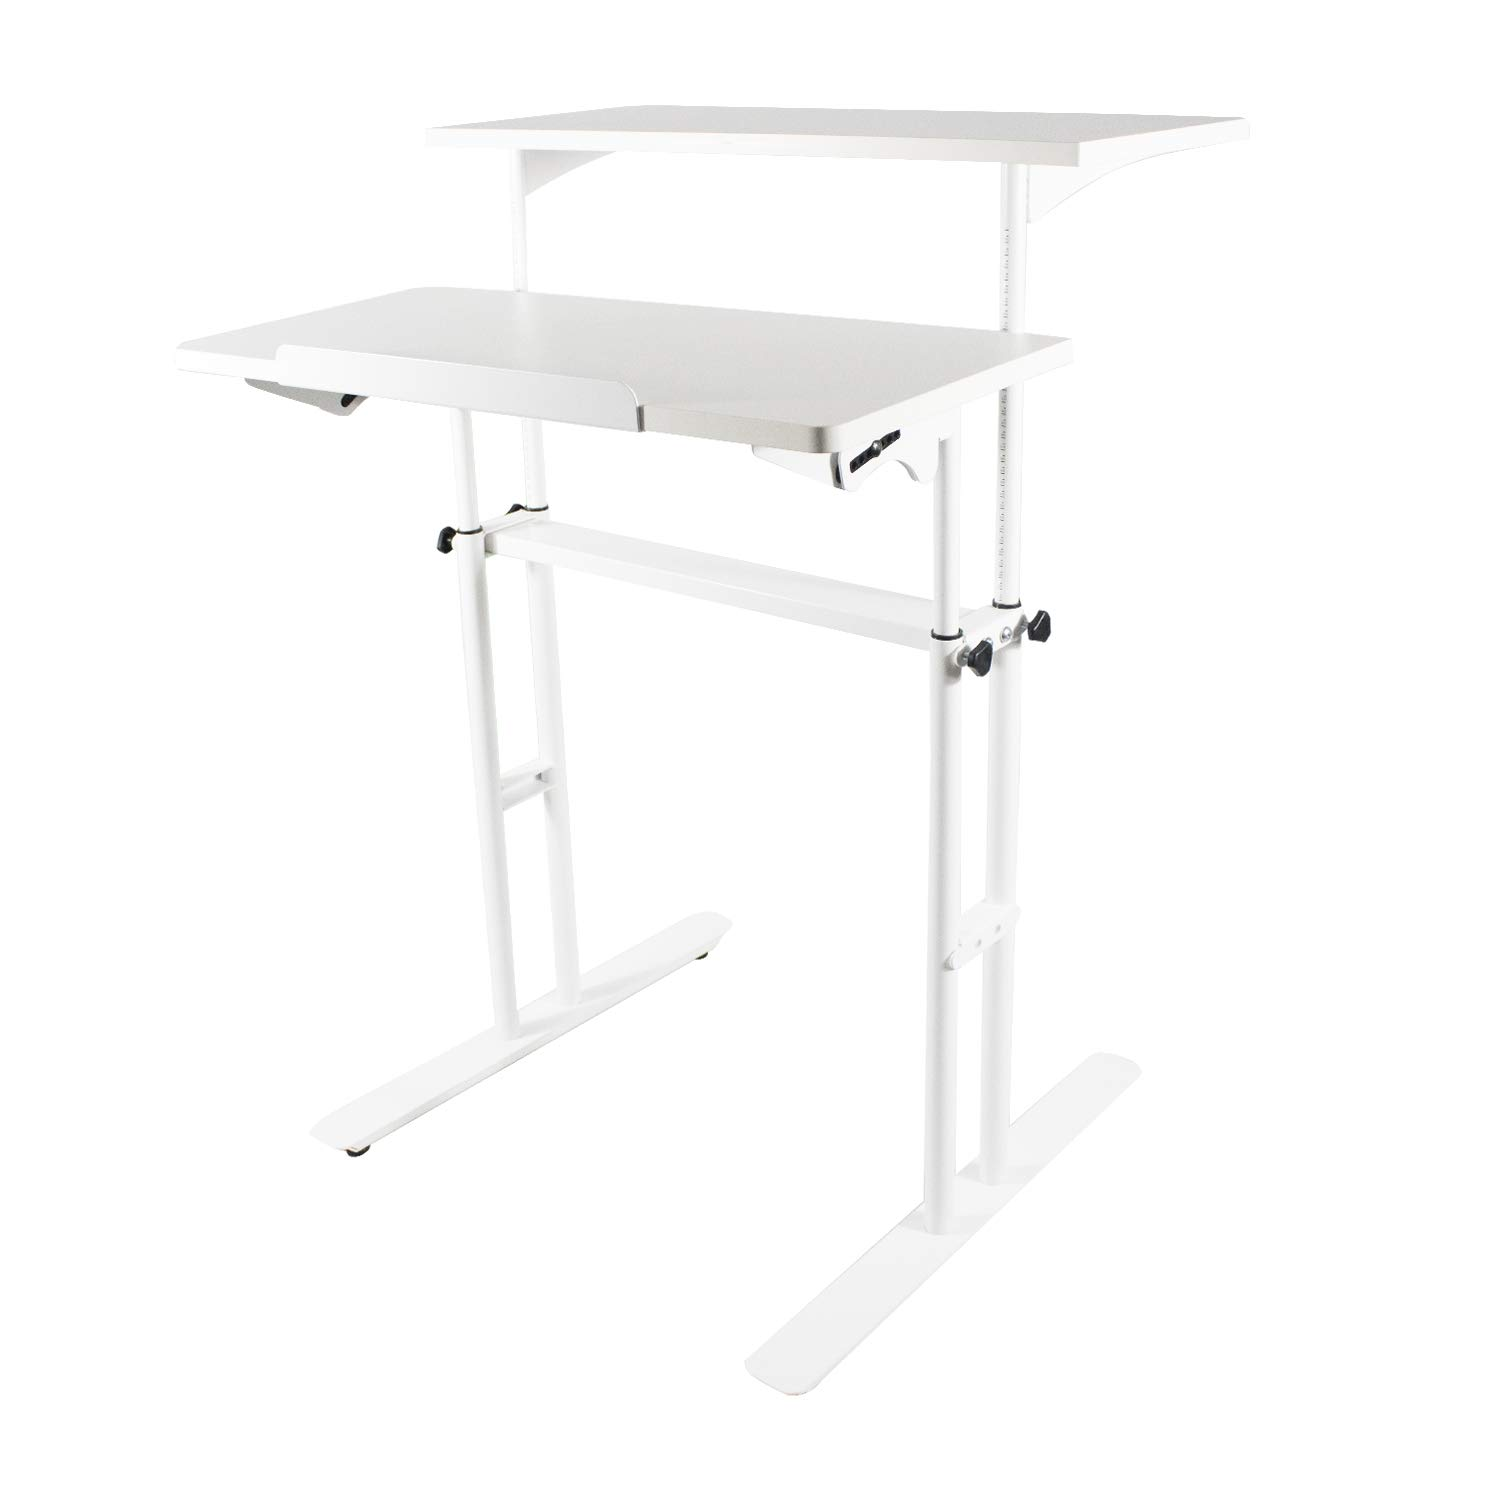 Weinerbee Adjustable Height Computer Desk Standing Seating 2 Modes (White)